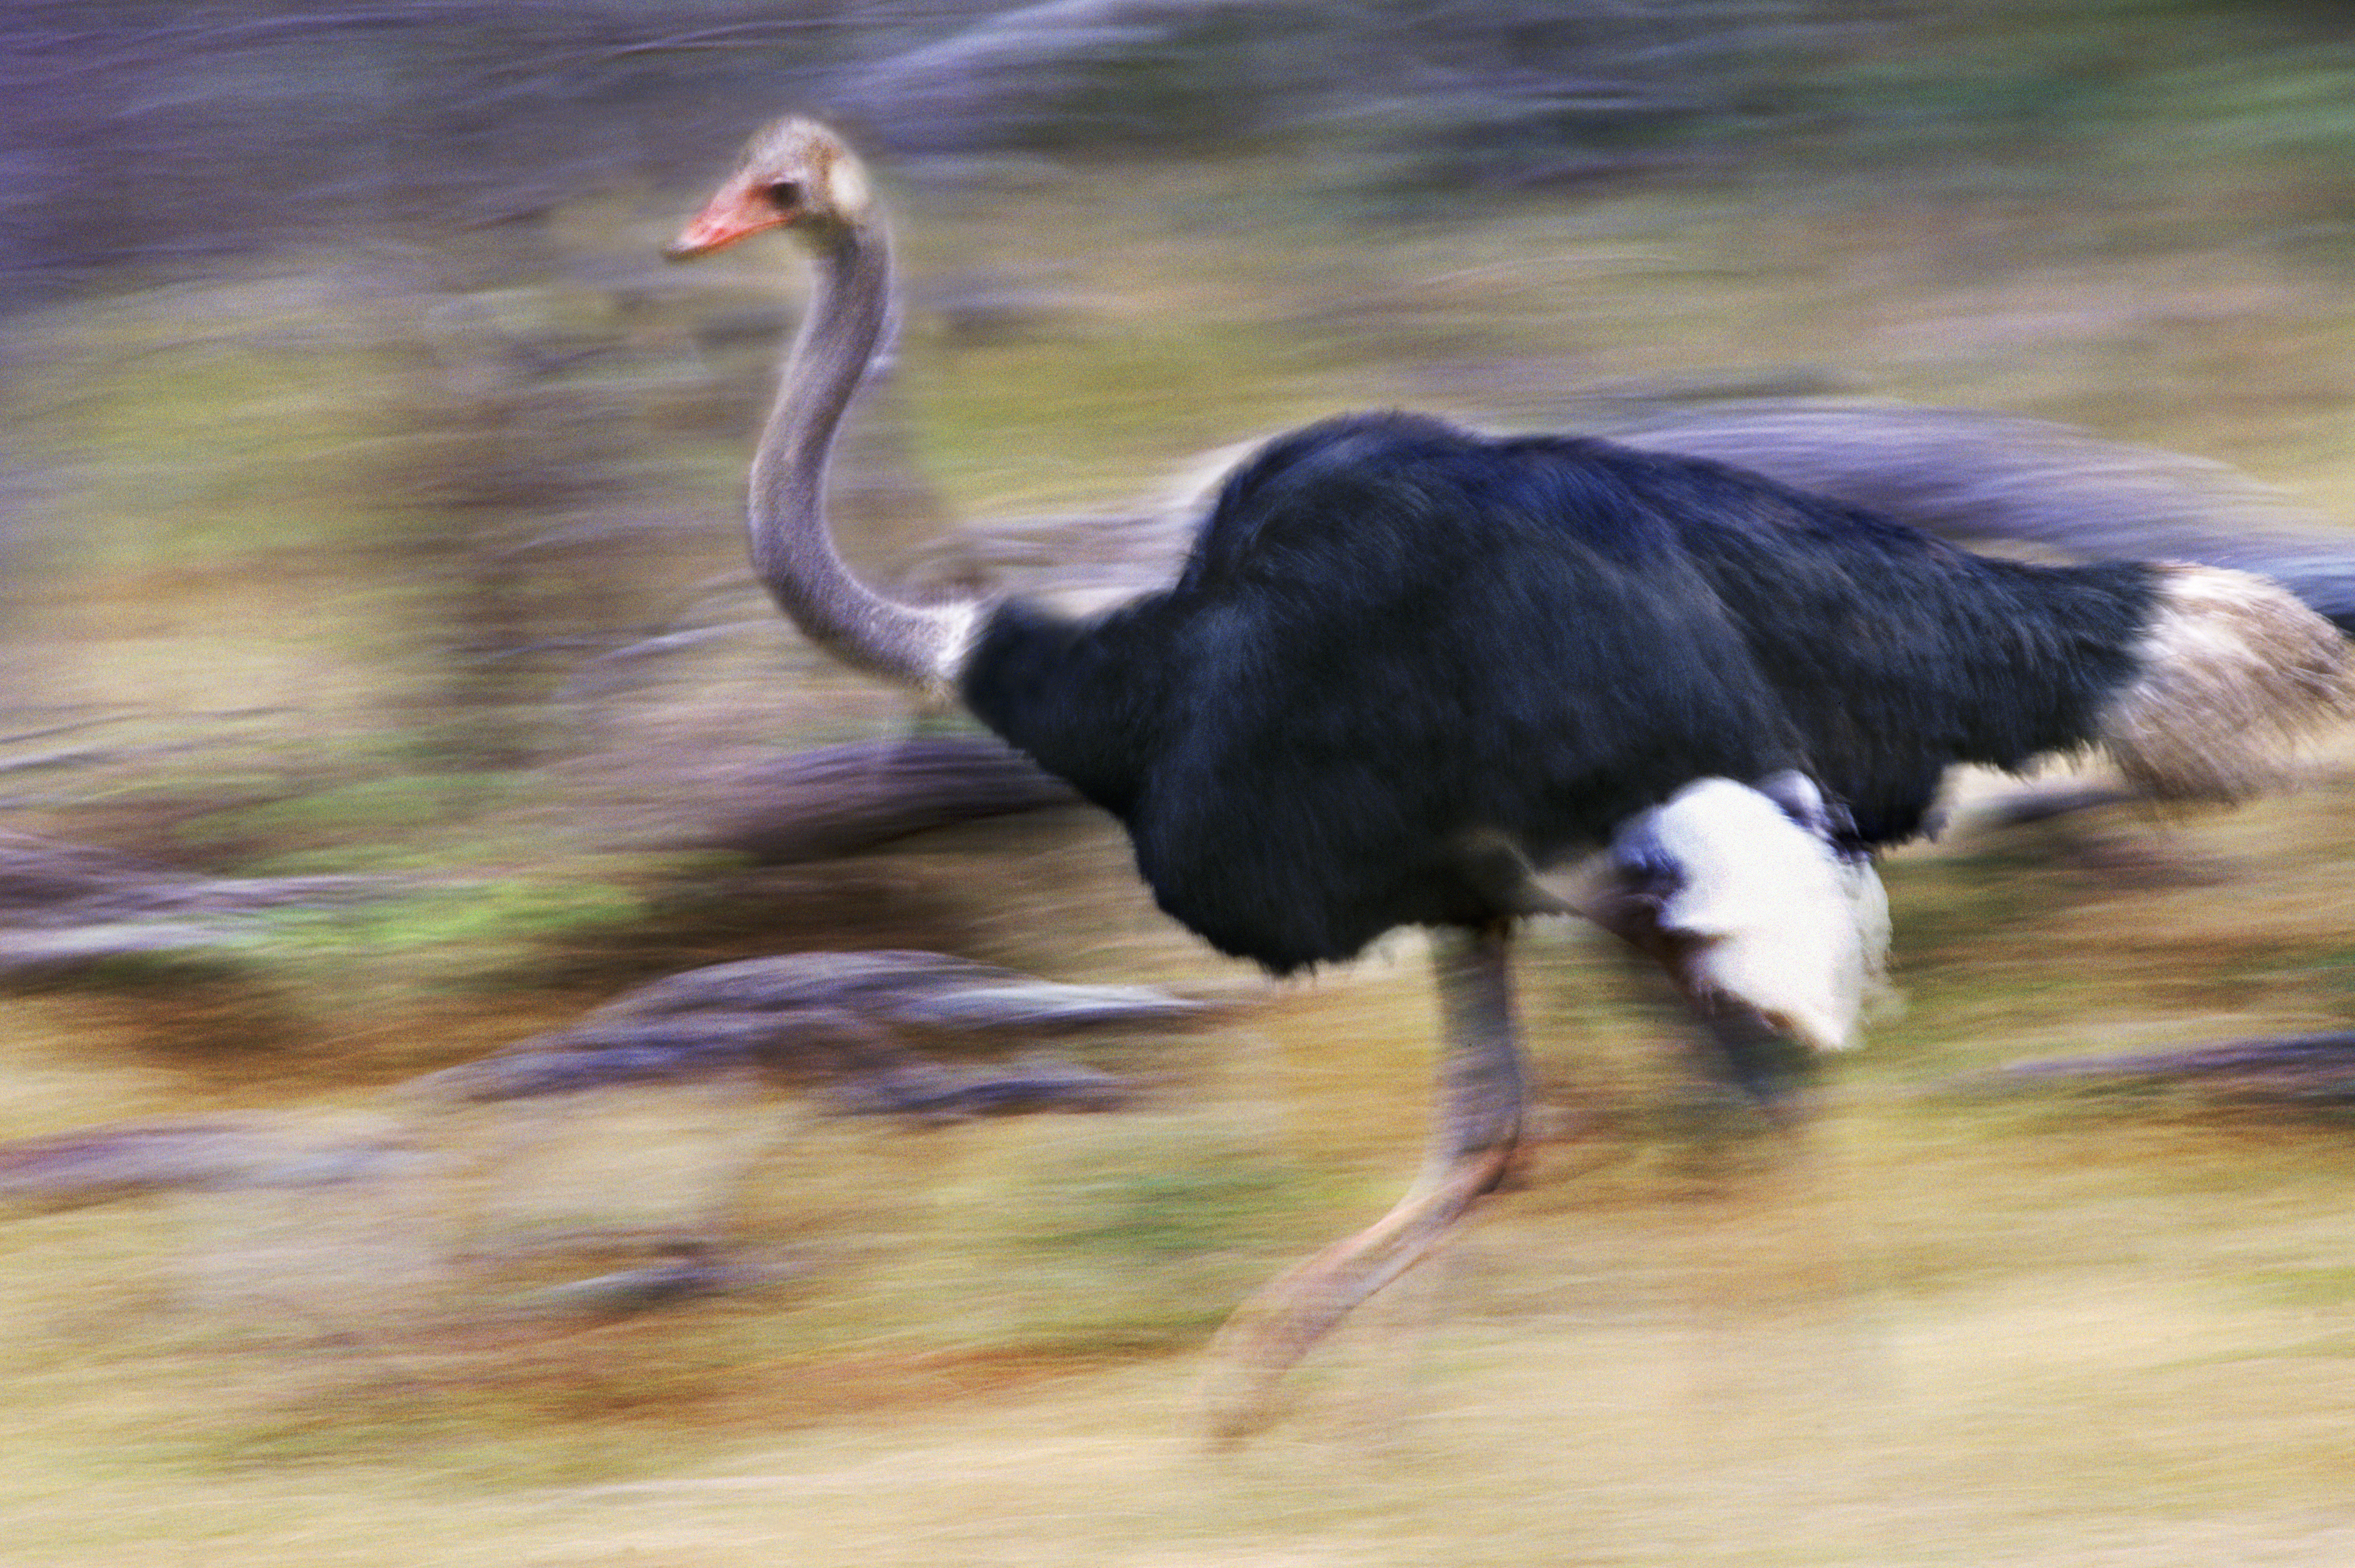 Common Ostrich. Steve Bloom Images/Alamy